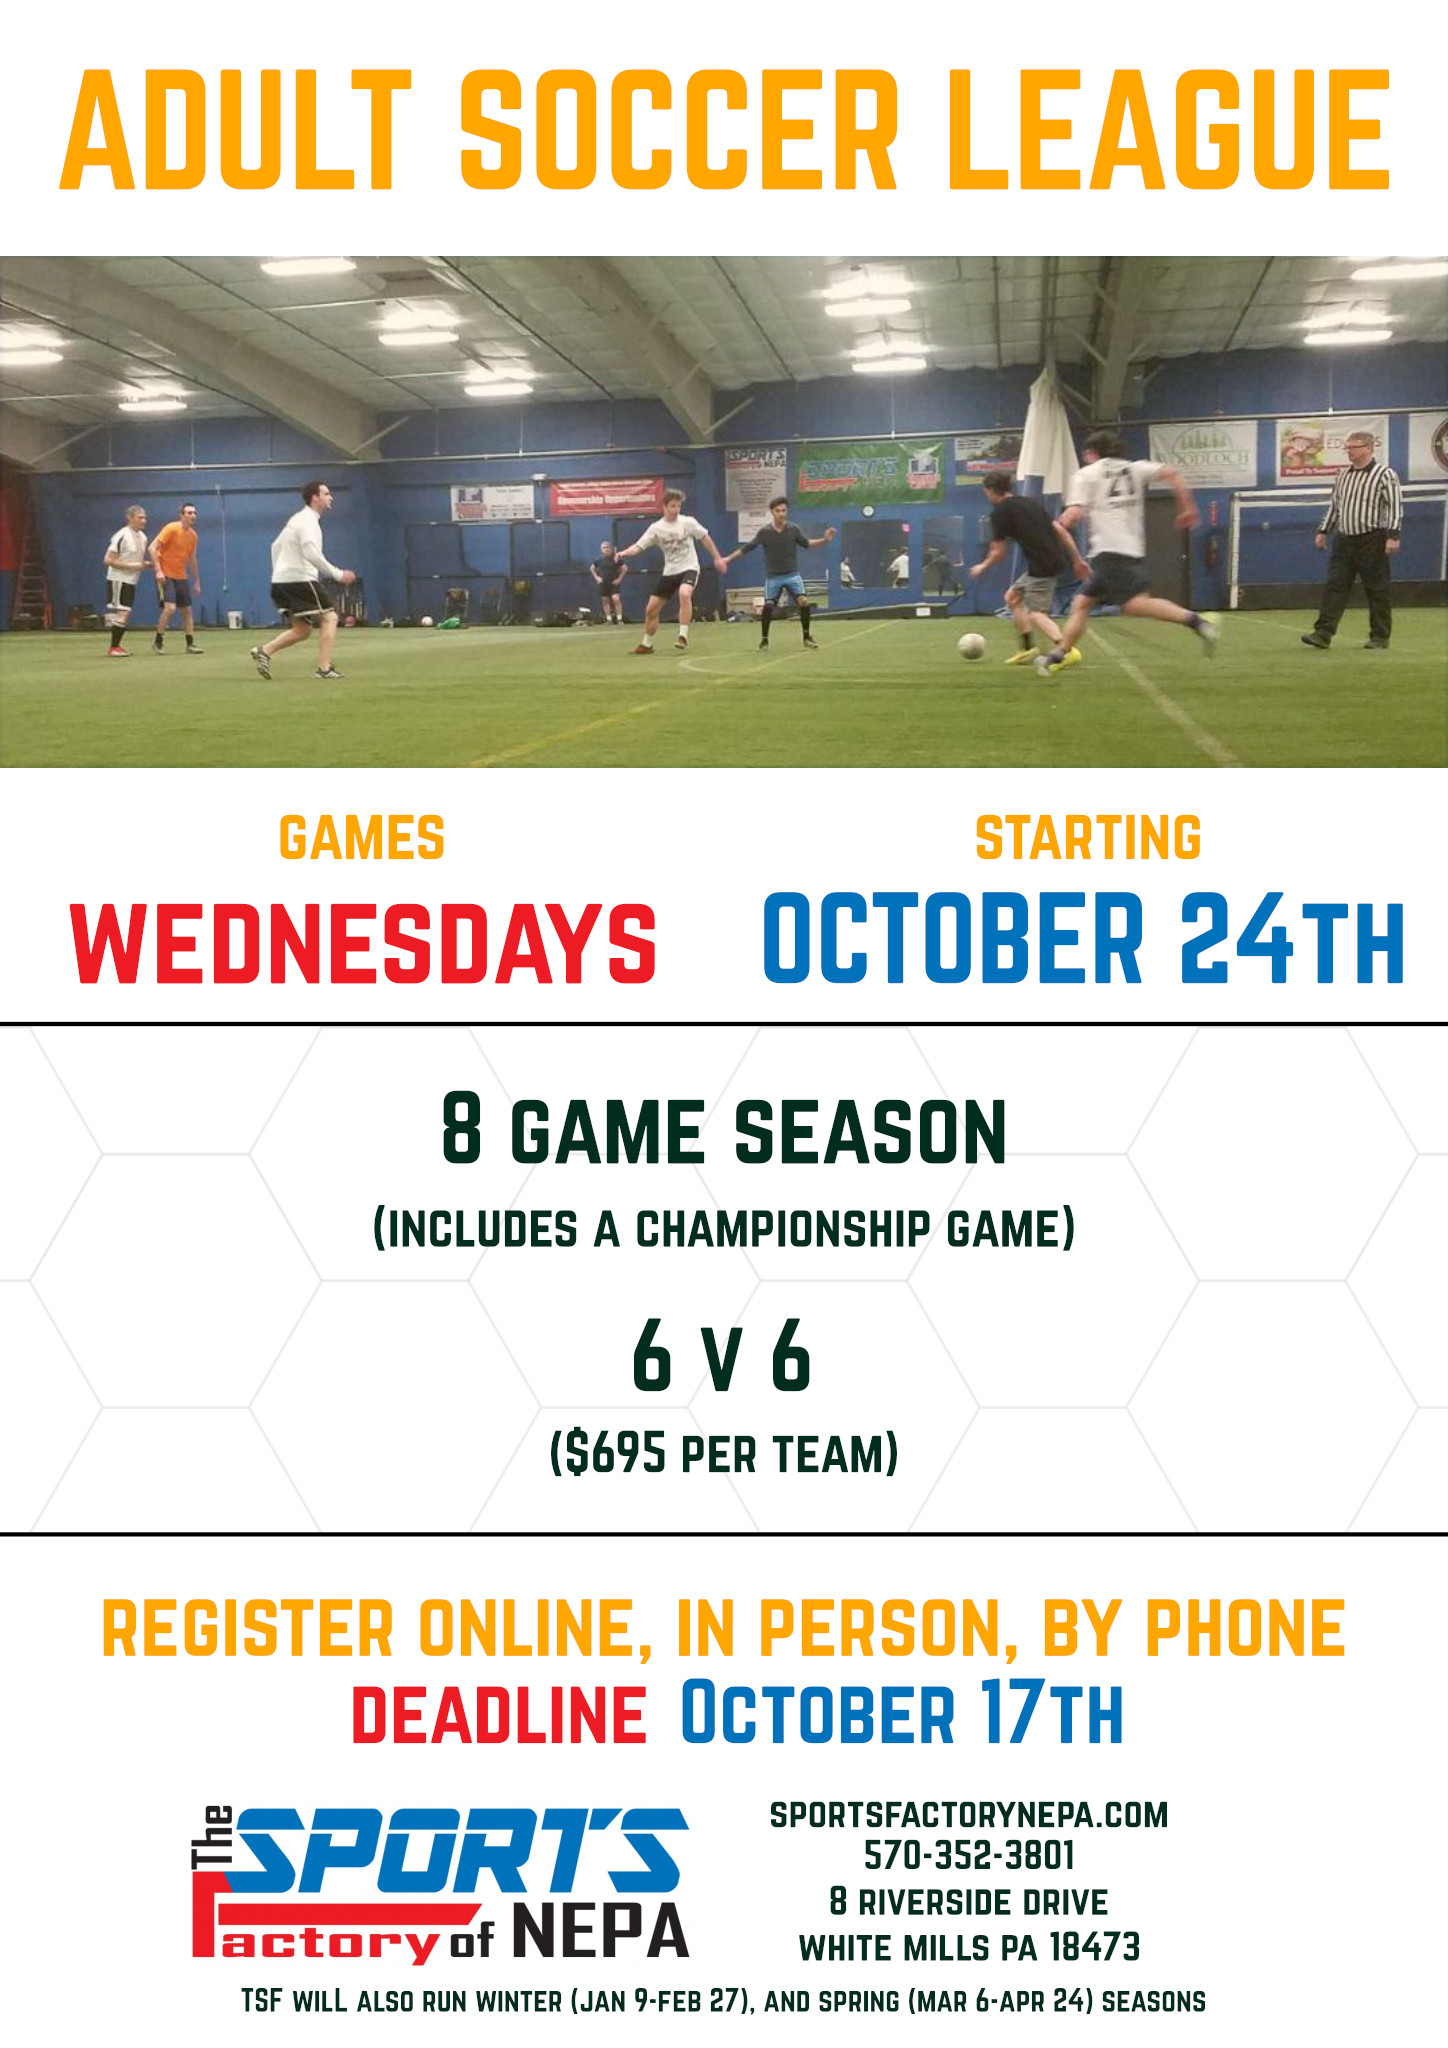 Adult Soccer League @ The Sports Factory of NEPA